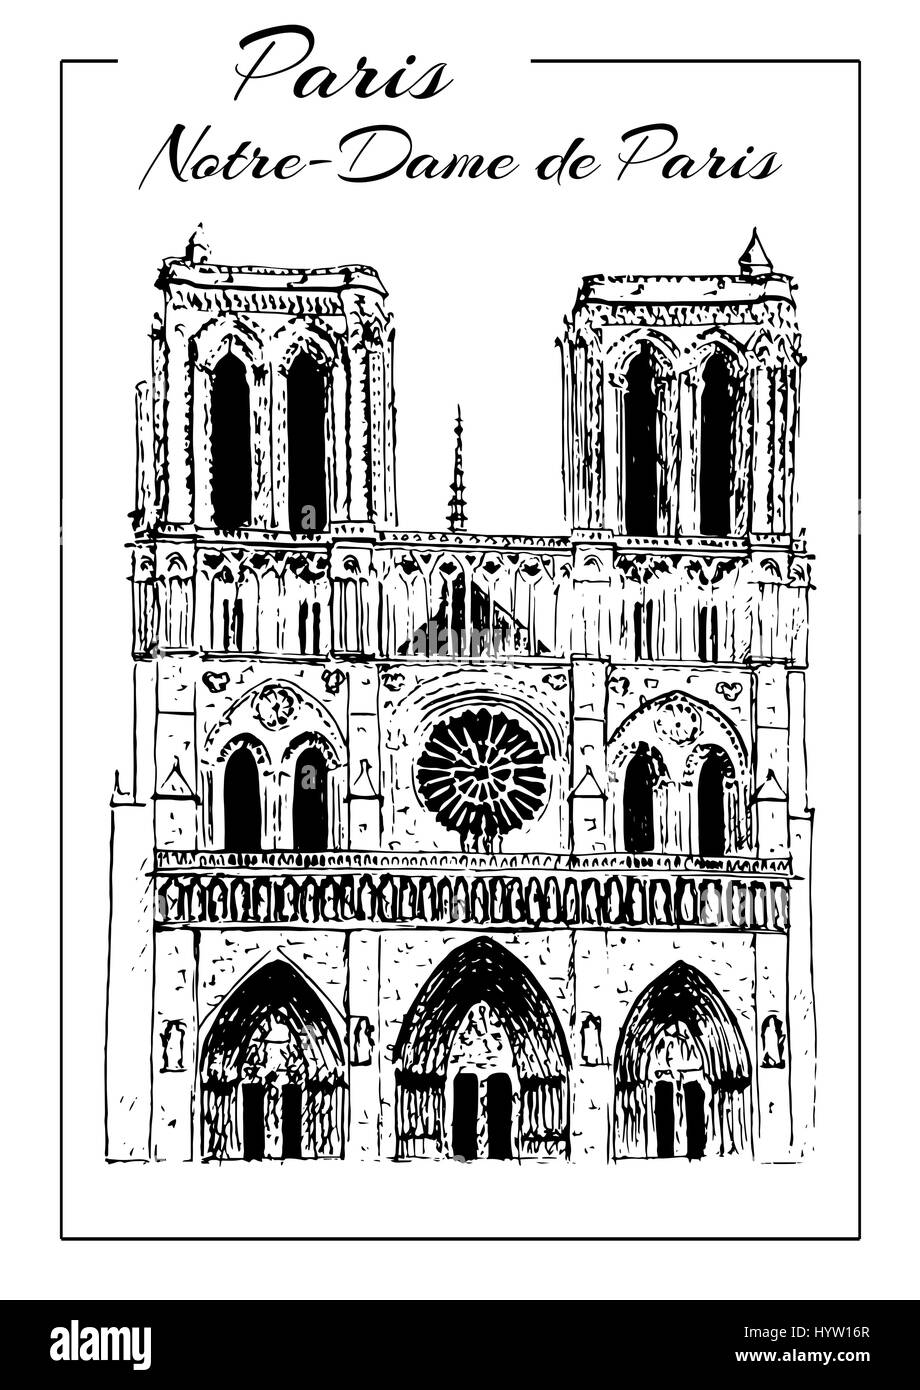 Notre dame de paris cathedral paris symbol french sightseeing notre dame de paris cathedral paris symbol french sightseeing hand drawing sketch vector illustration touristic place can be used at advertising biocorpaavc